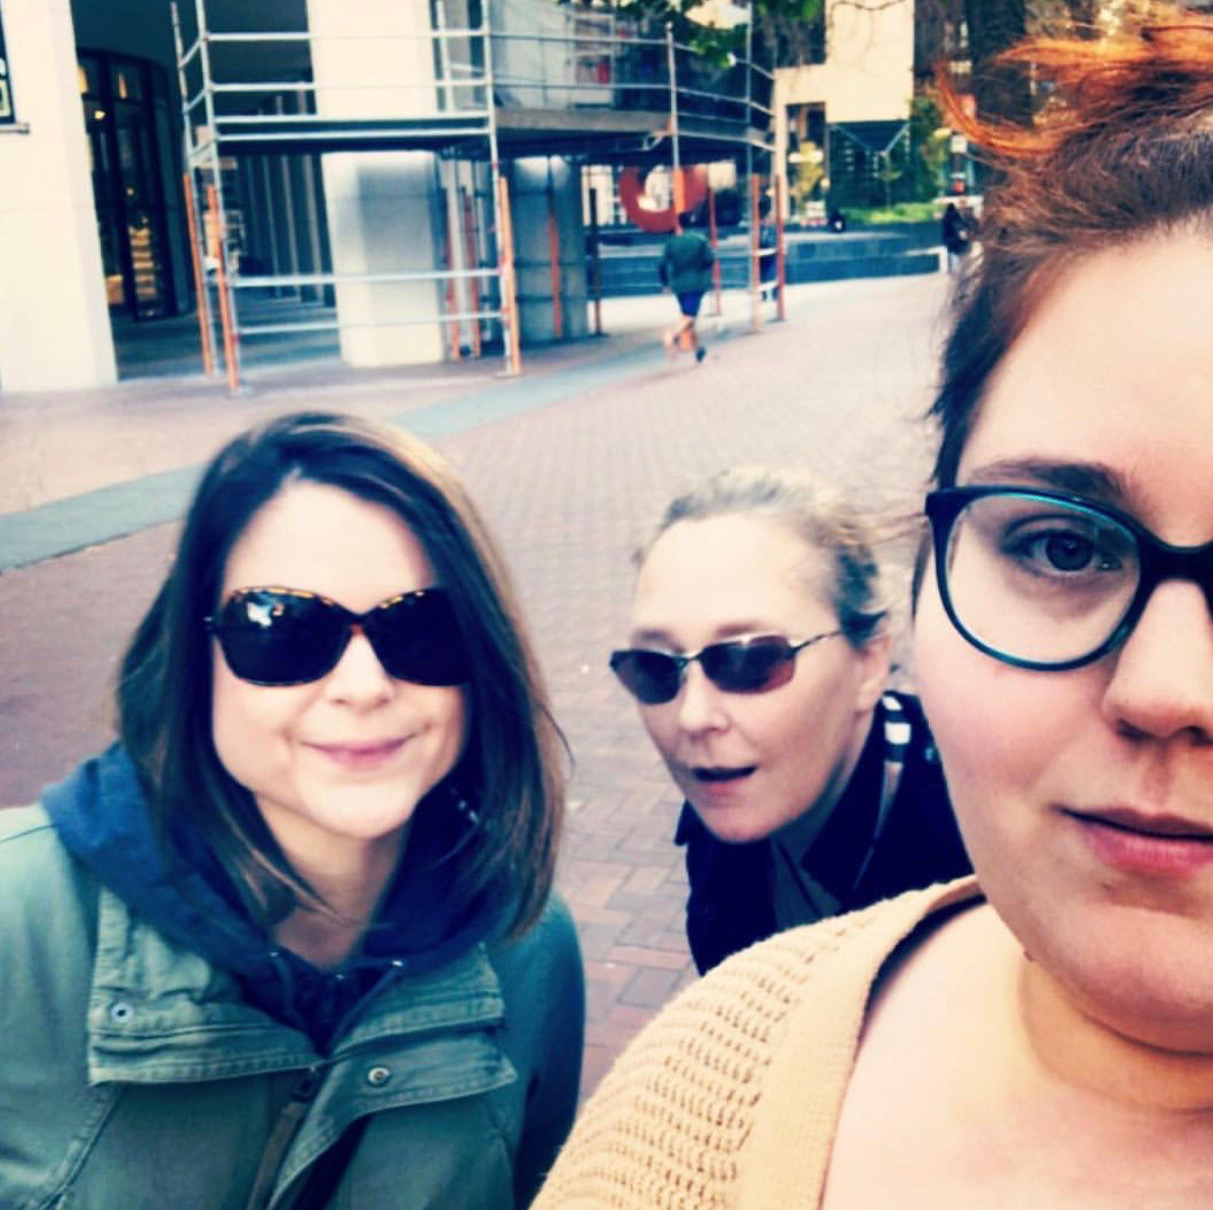 Nichole, Eileeen & Colleen on a chilly San Francisco afternoon (Dec 2017)